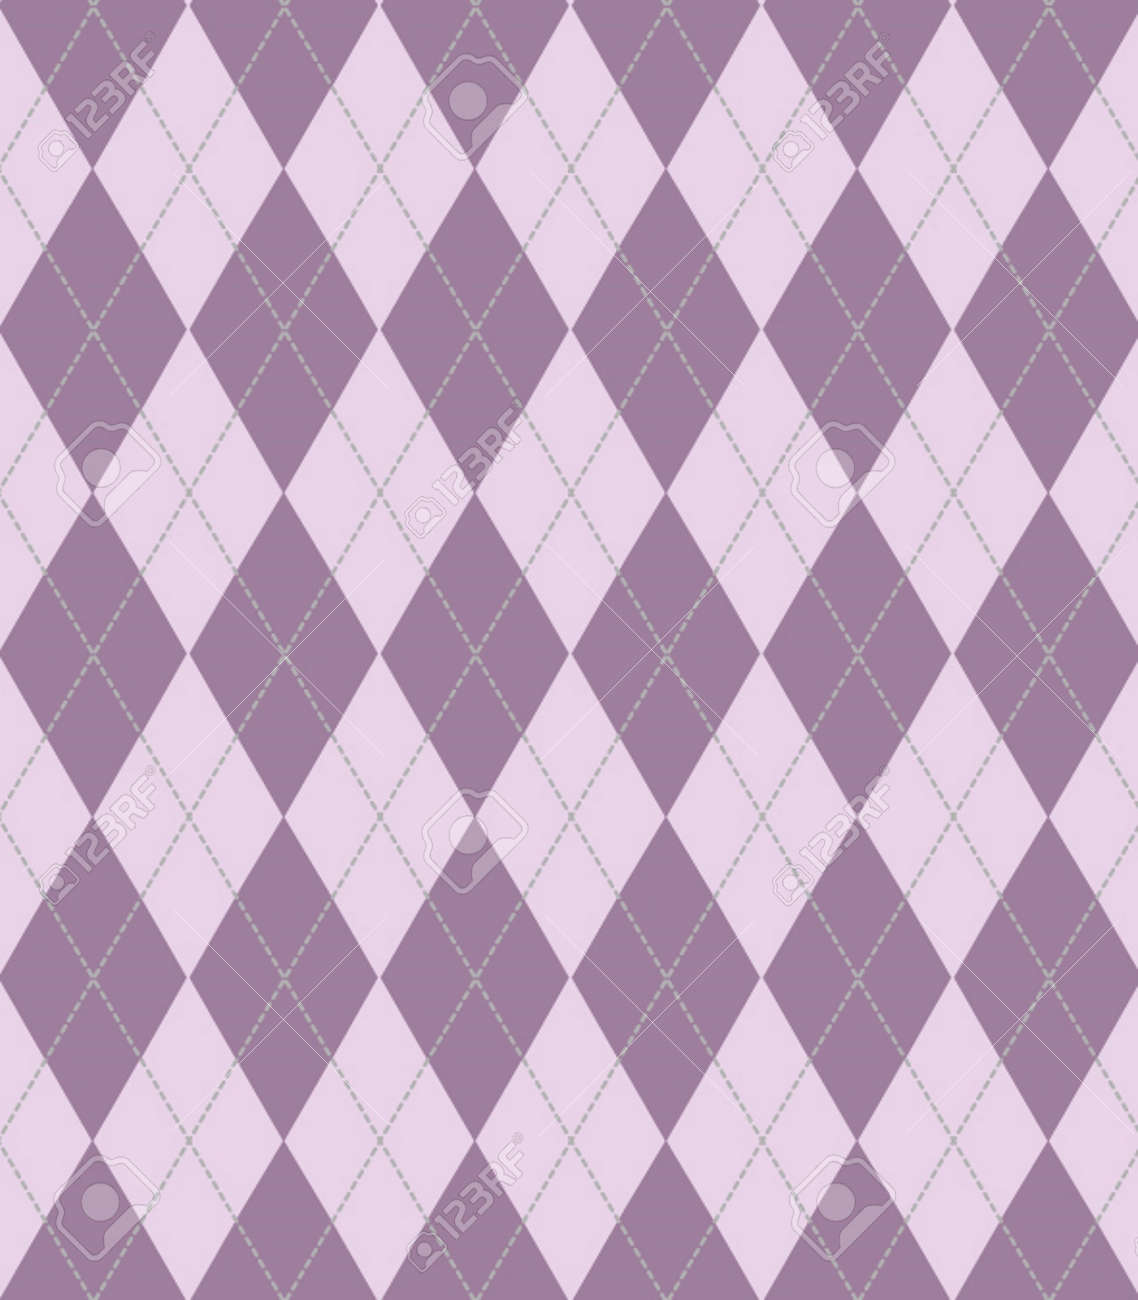 Large Argyle Purple Seamless Texture For Backgrounds Wallpaper Cloth Stock Vector